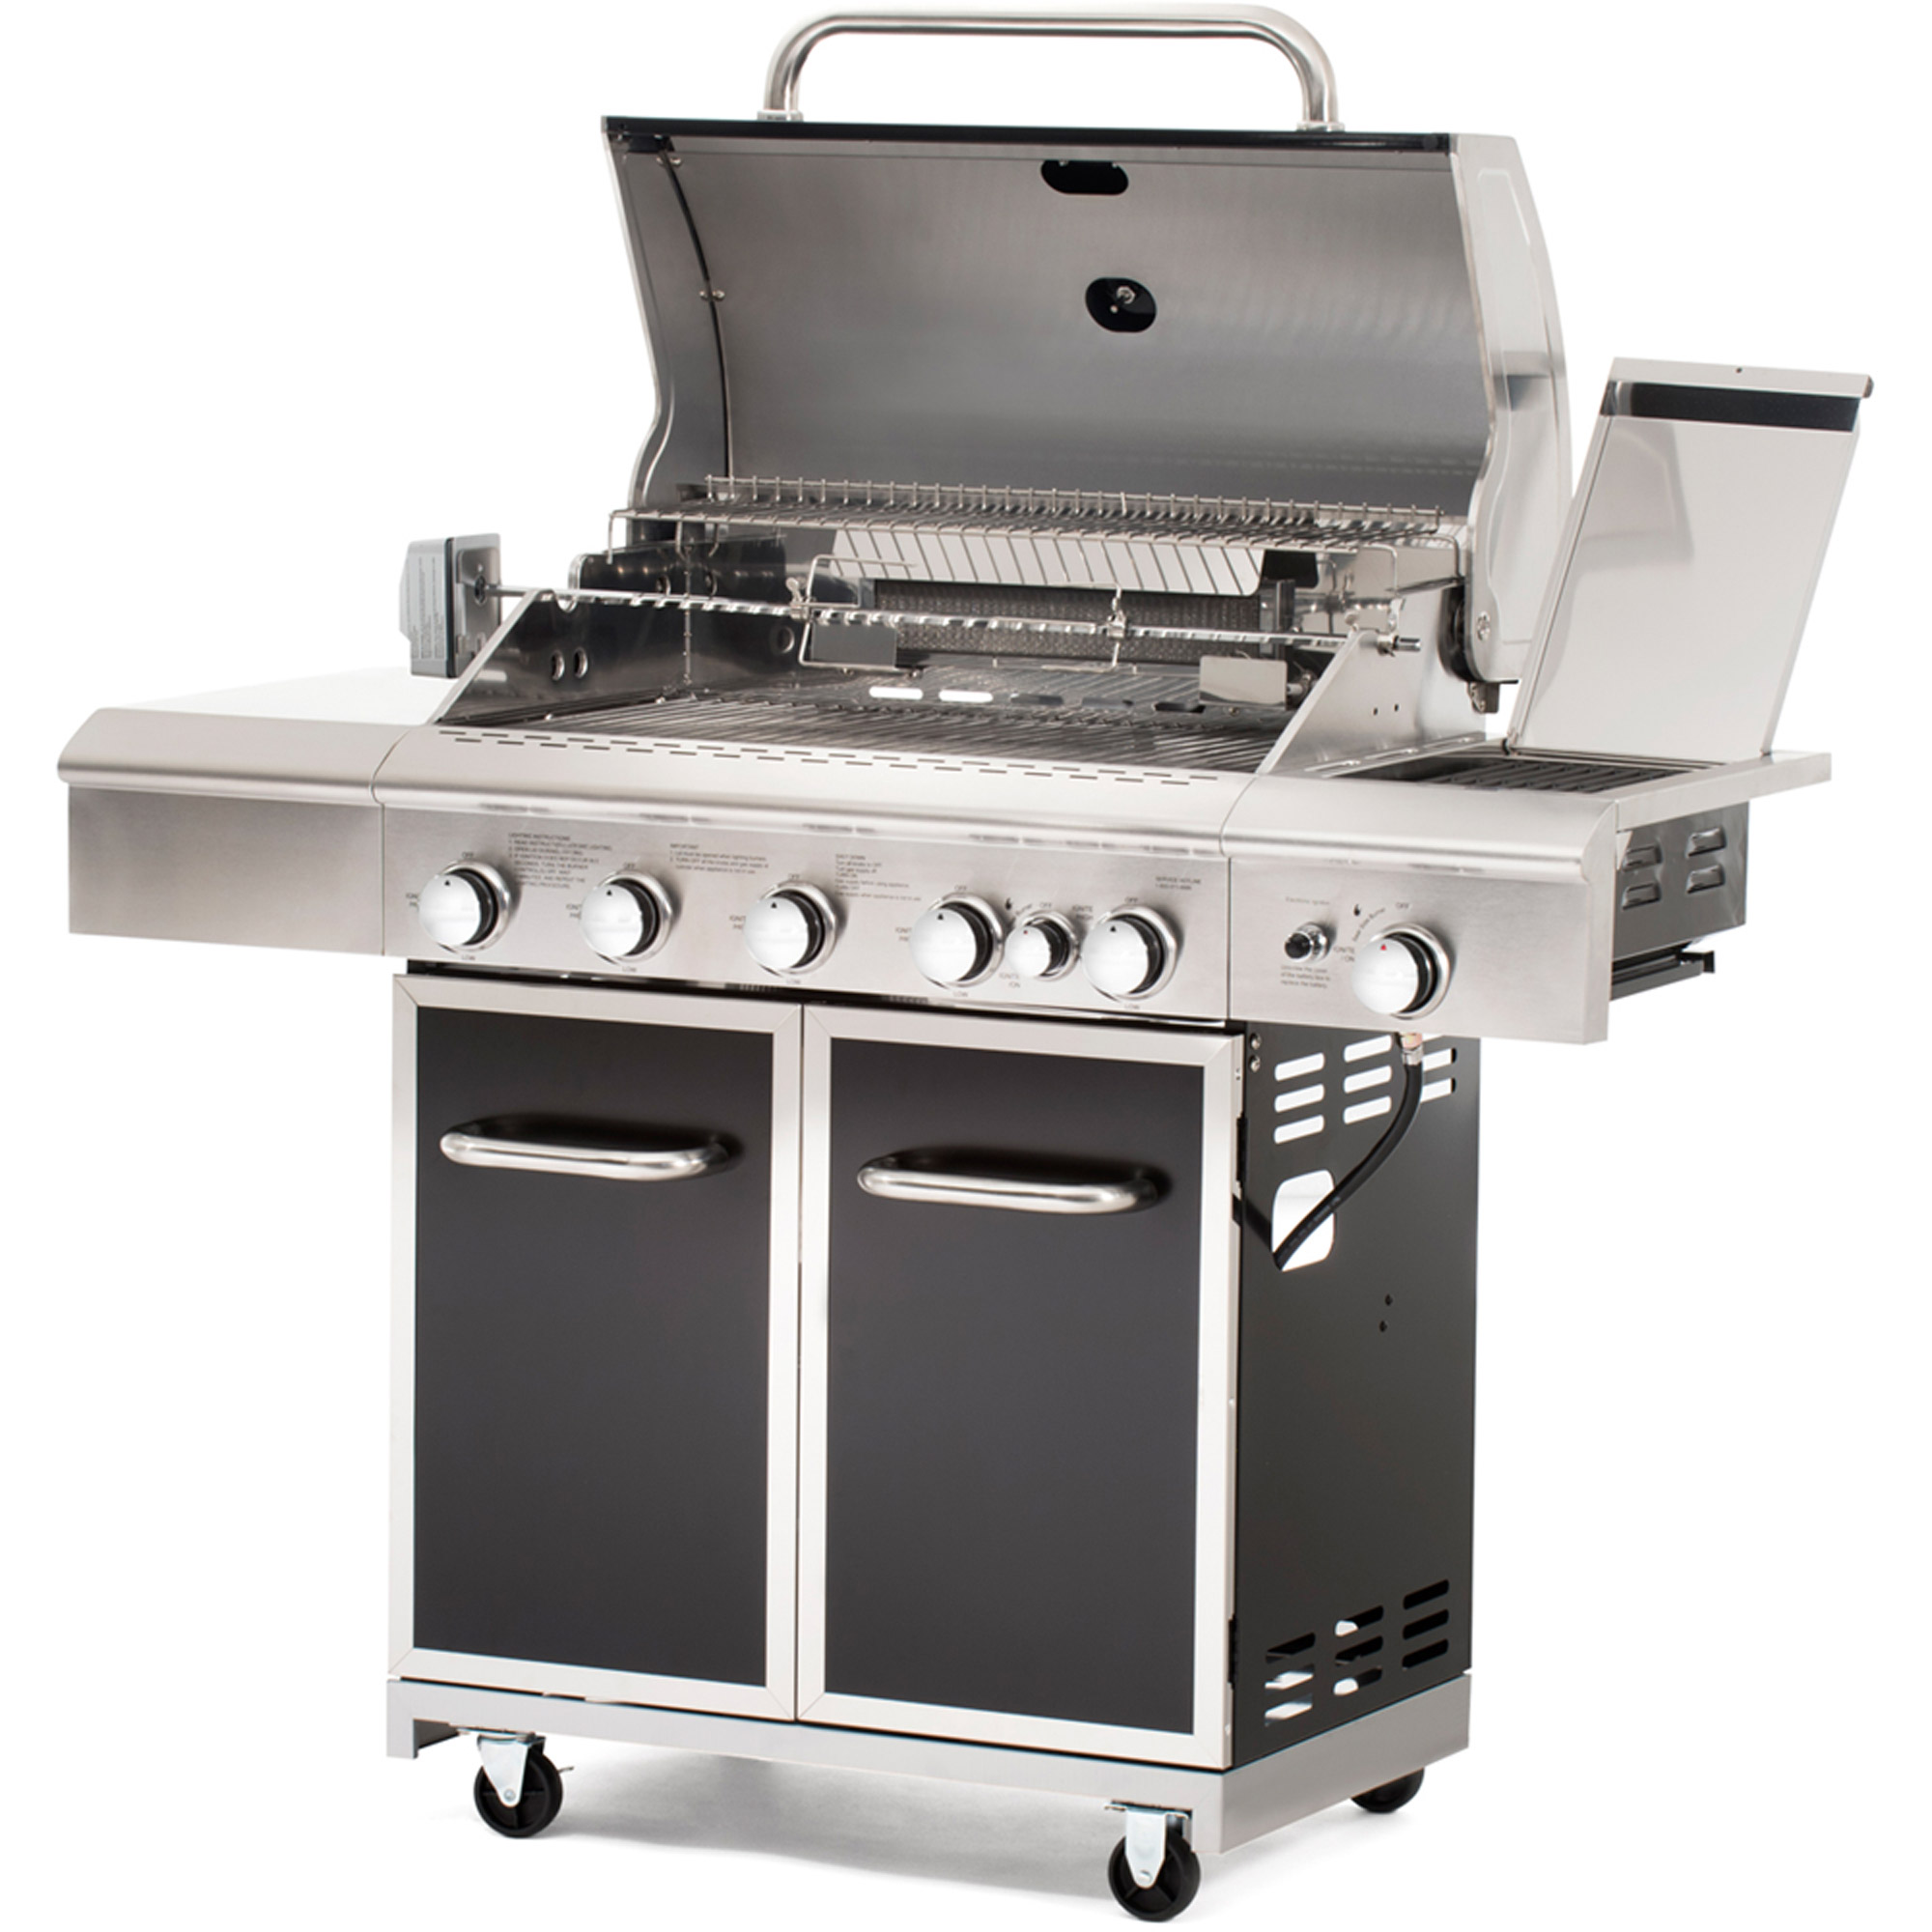 Better Homes and Gardens 5 Burner Gas Grill with Searing Side